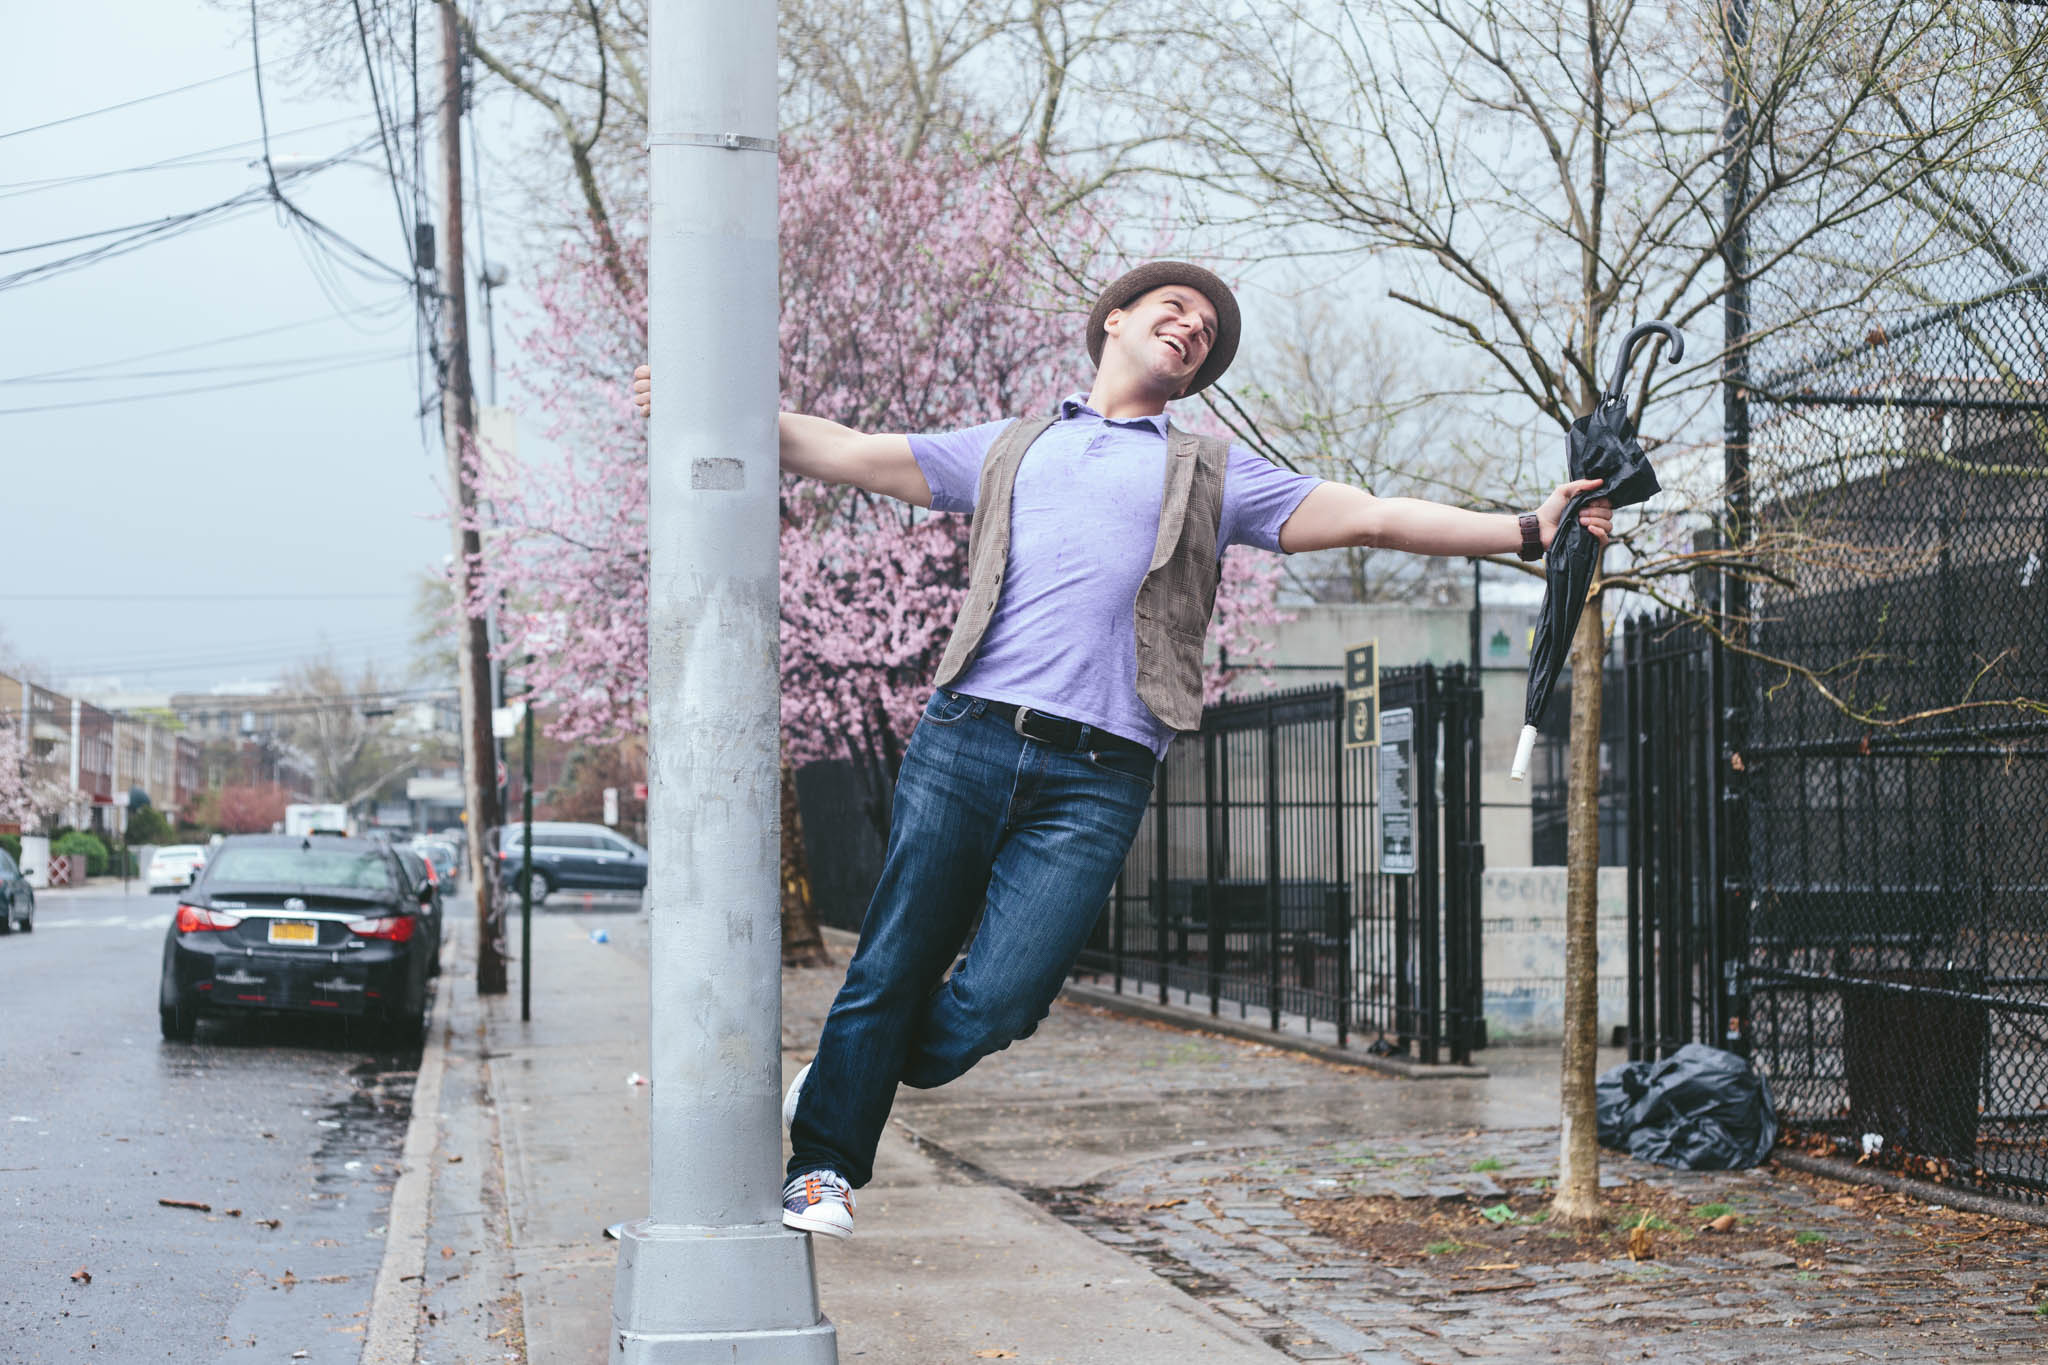 As soon as we finished the interview, it started to rain. We went to Ryan's apartment to grab umbrellas. Of course, we tried to recreate the iconic image of Gene Kelly in  Singin' in the Rain.